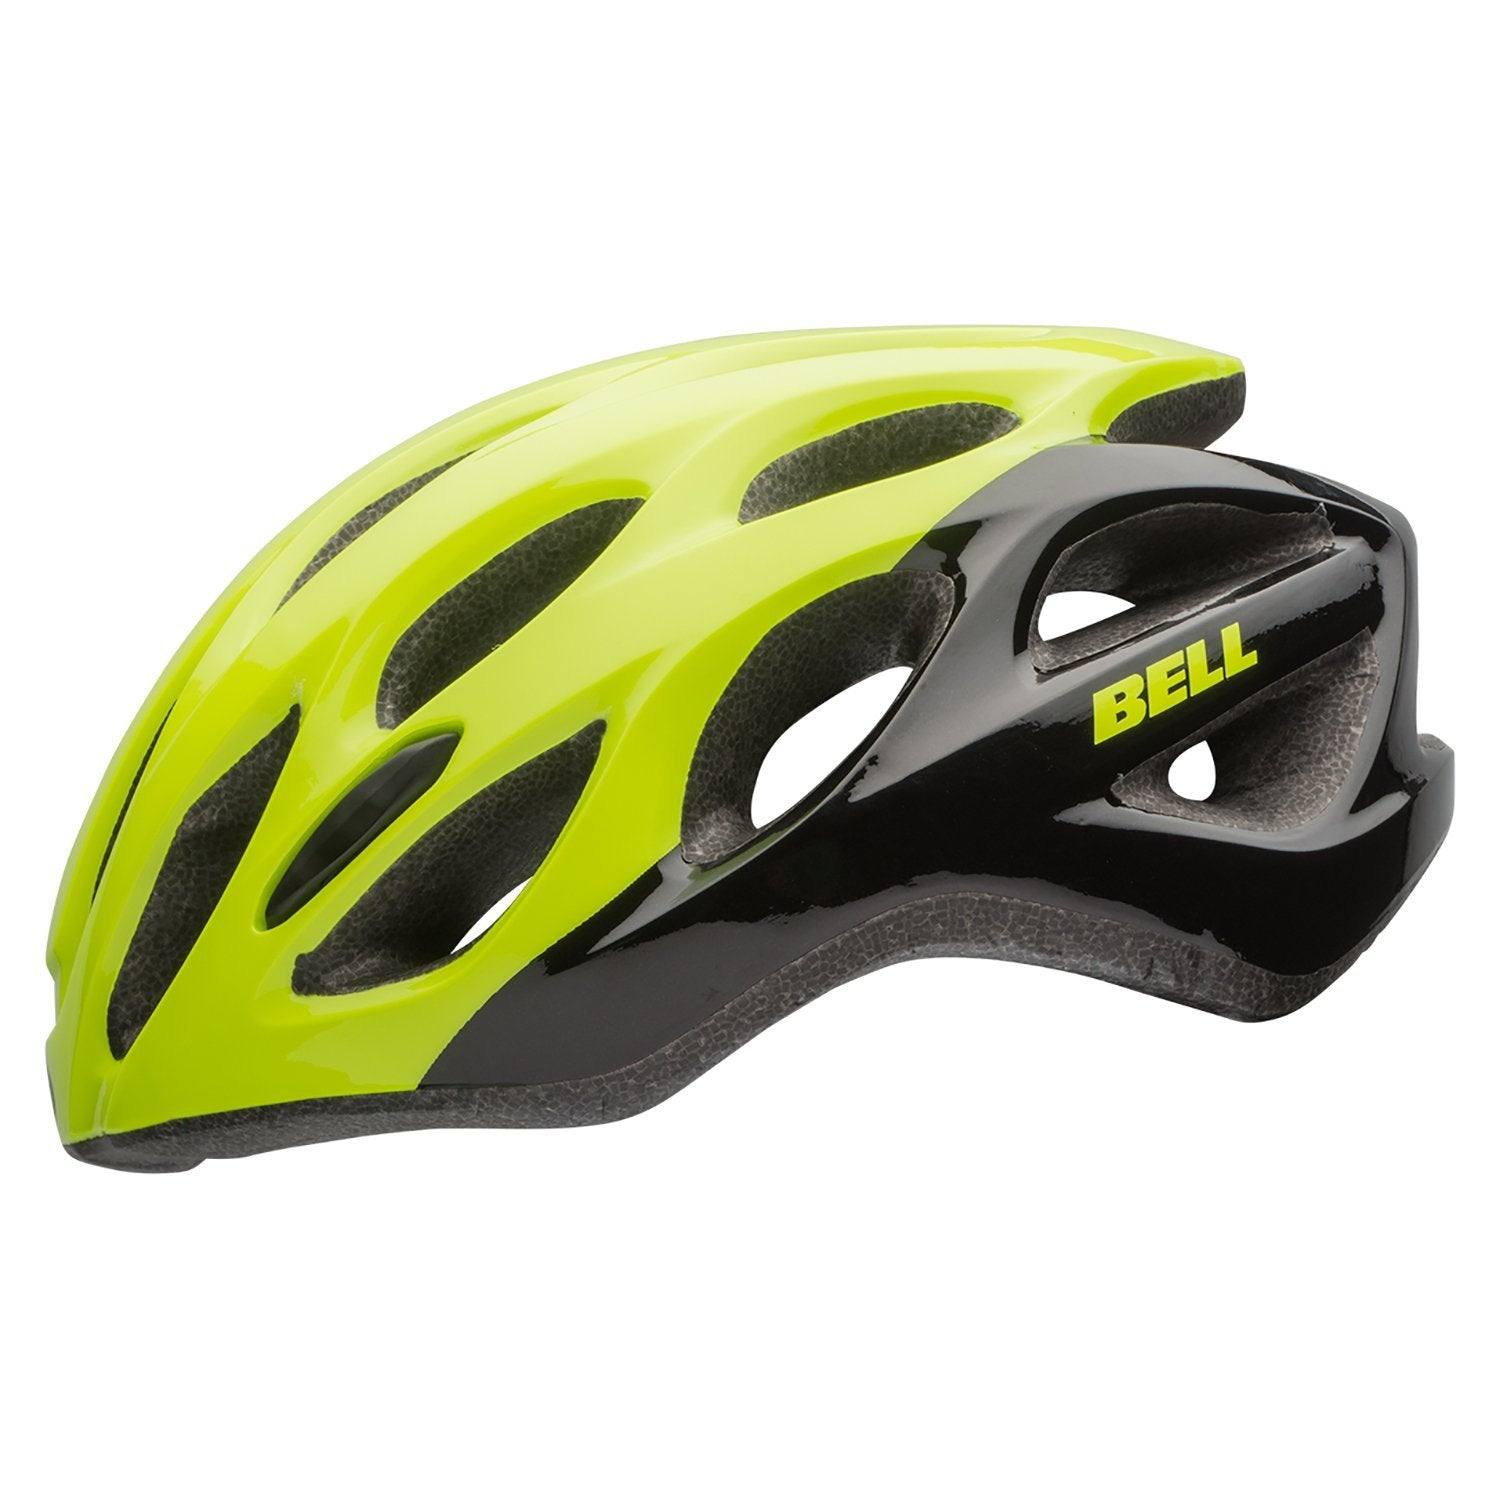 CASCO DE CICLISMO. DRAFT